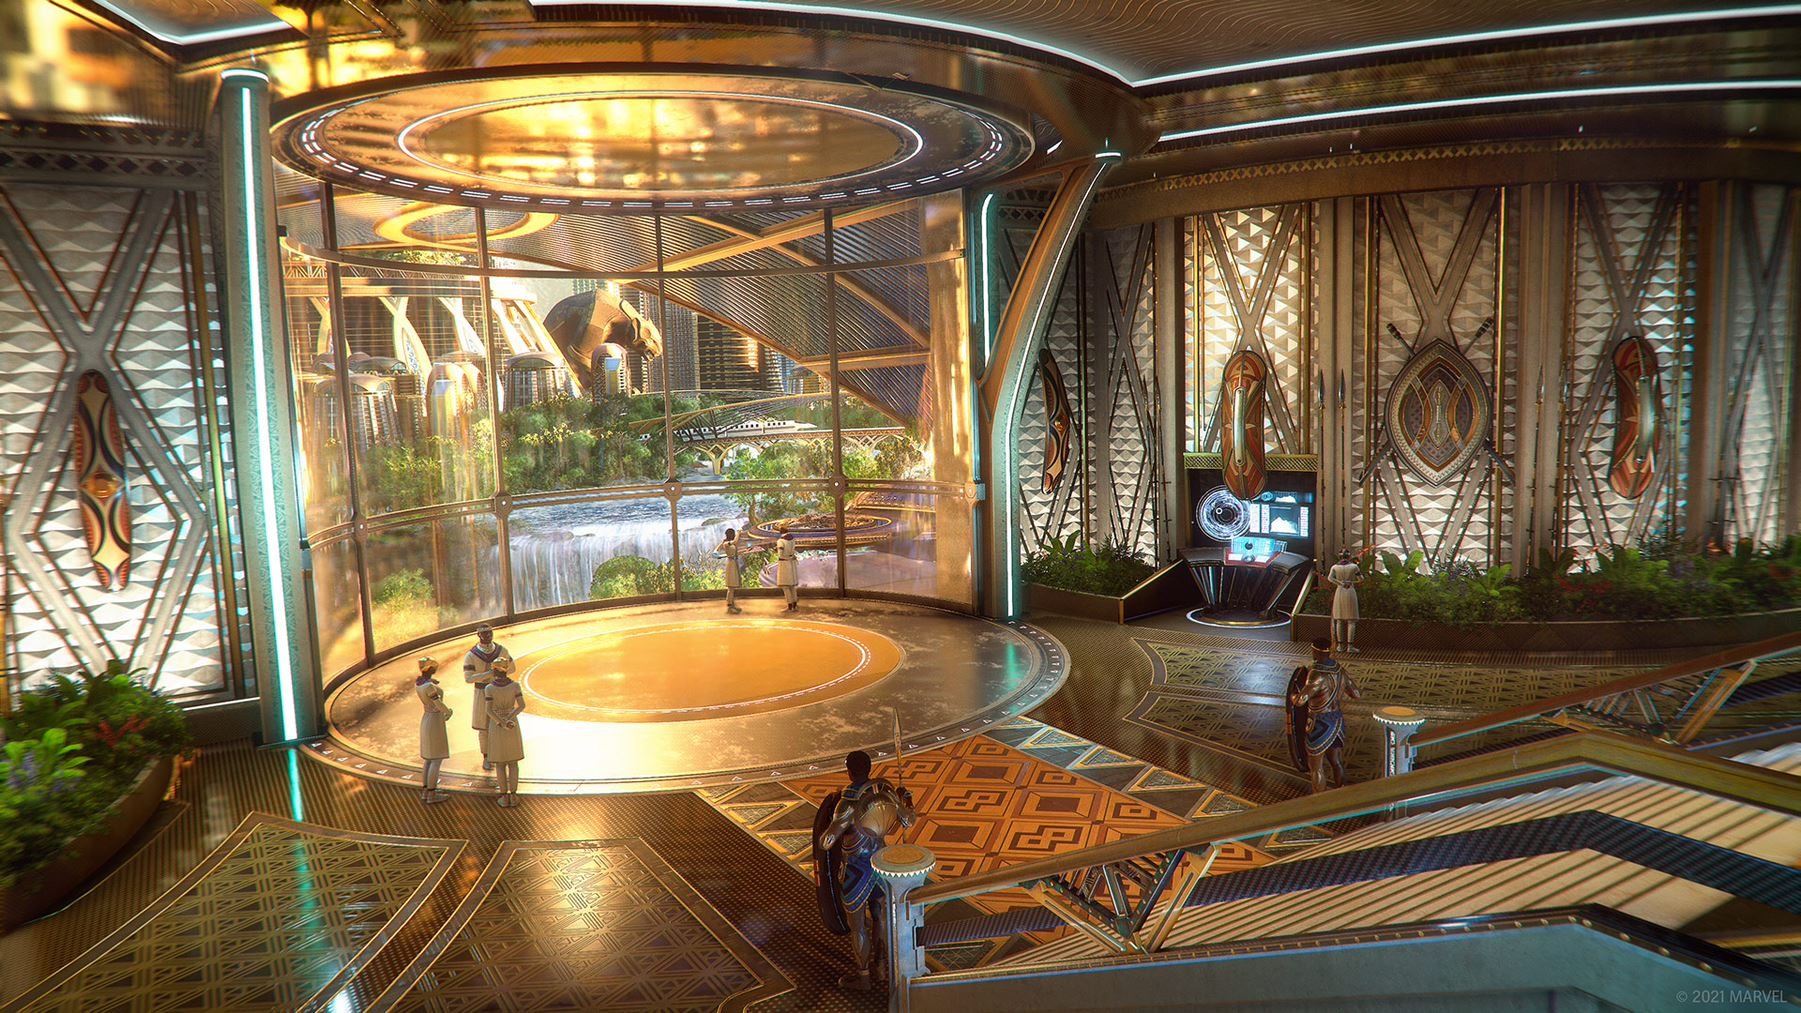 Concept art of our new Outpost in Wakanda's capital city, Birnin Zana. It features a large, circular atrium, the floors inlaid with gold. Tribal artifacts hang on the walls. A glass window looks out at the city - a waterfall is seen off in the distance. Two armored guards stand at the ready at the base of a staircase.